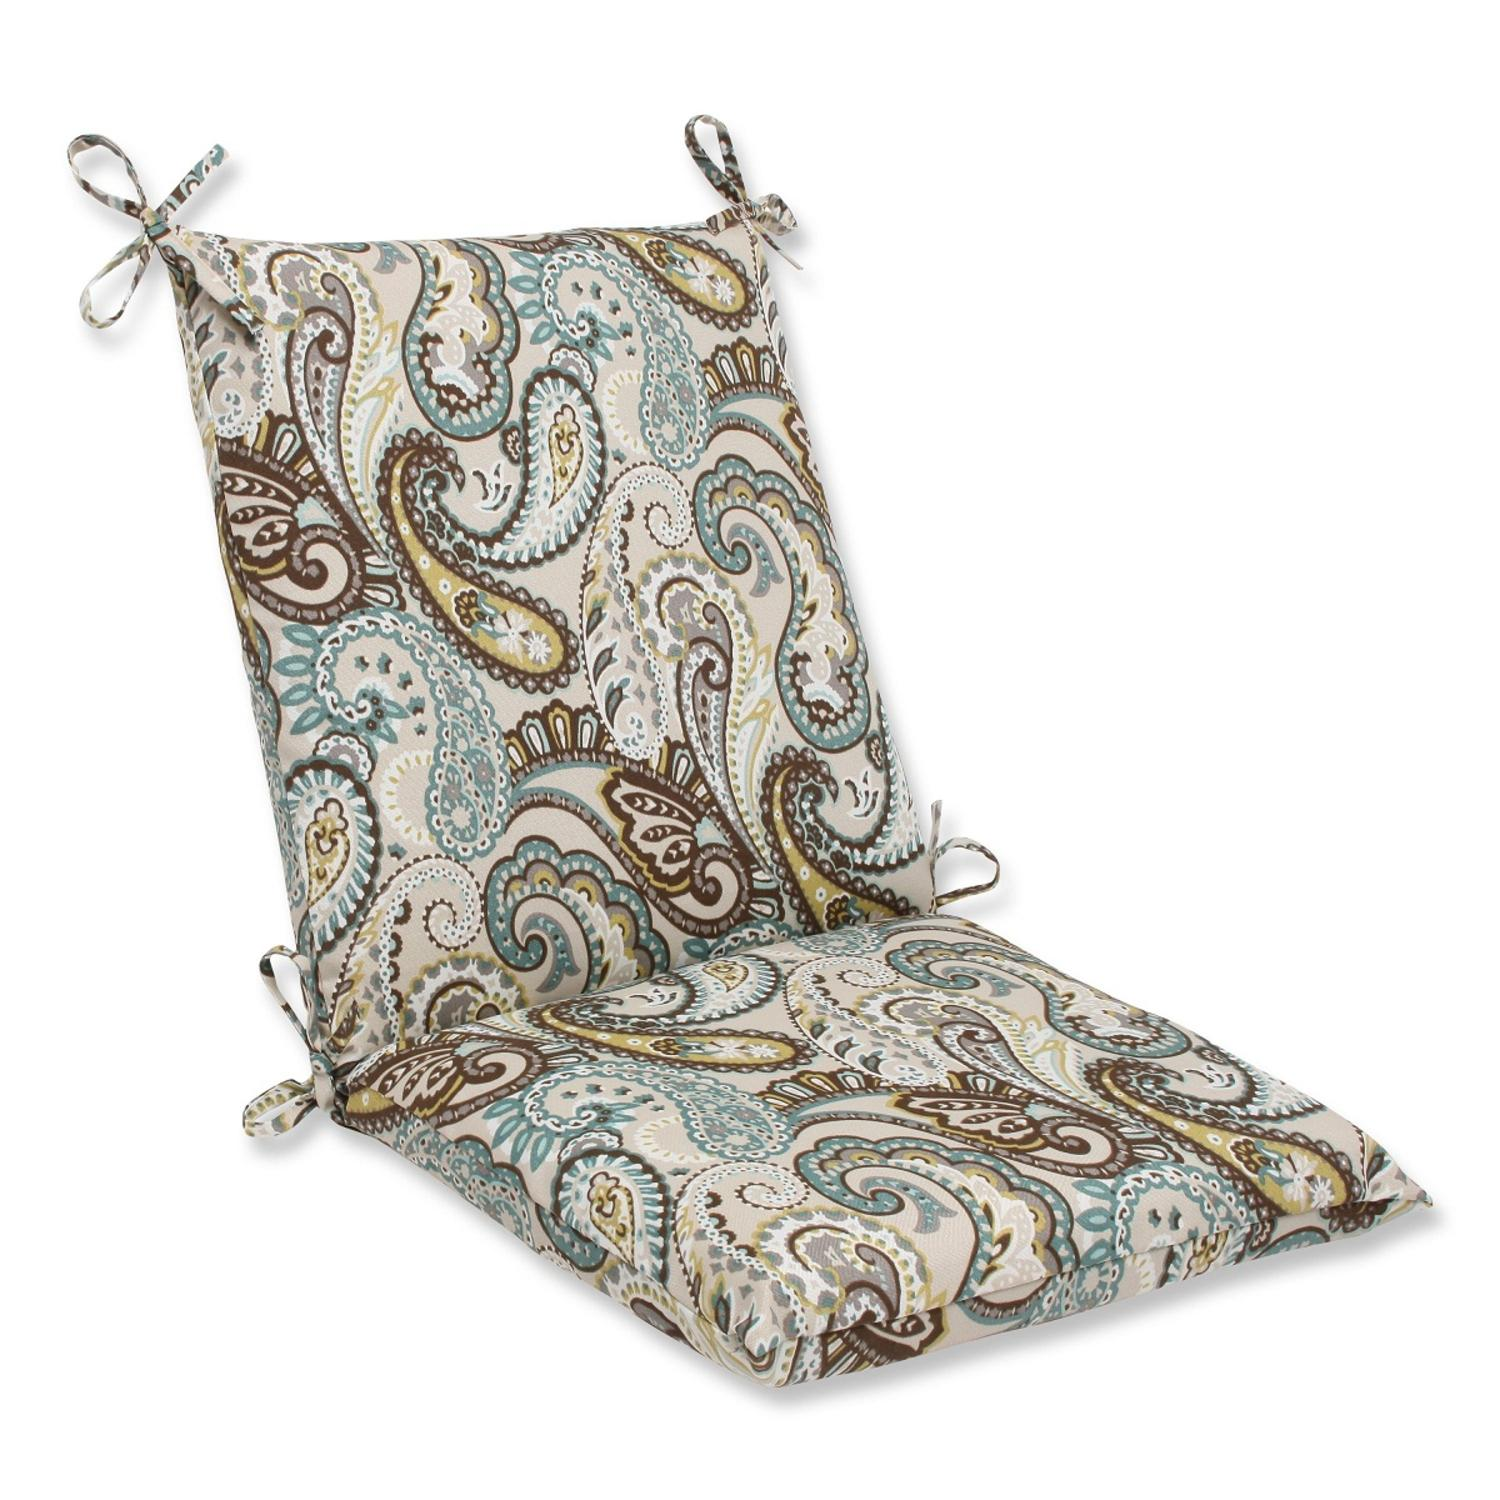 "36.5"" Paisley Giardino Light Blue and Brown Outdoor Patio Chair Cushion"